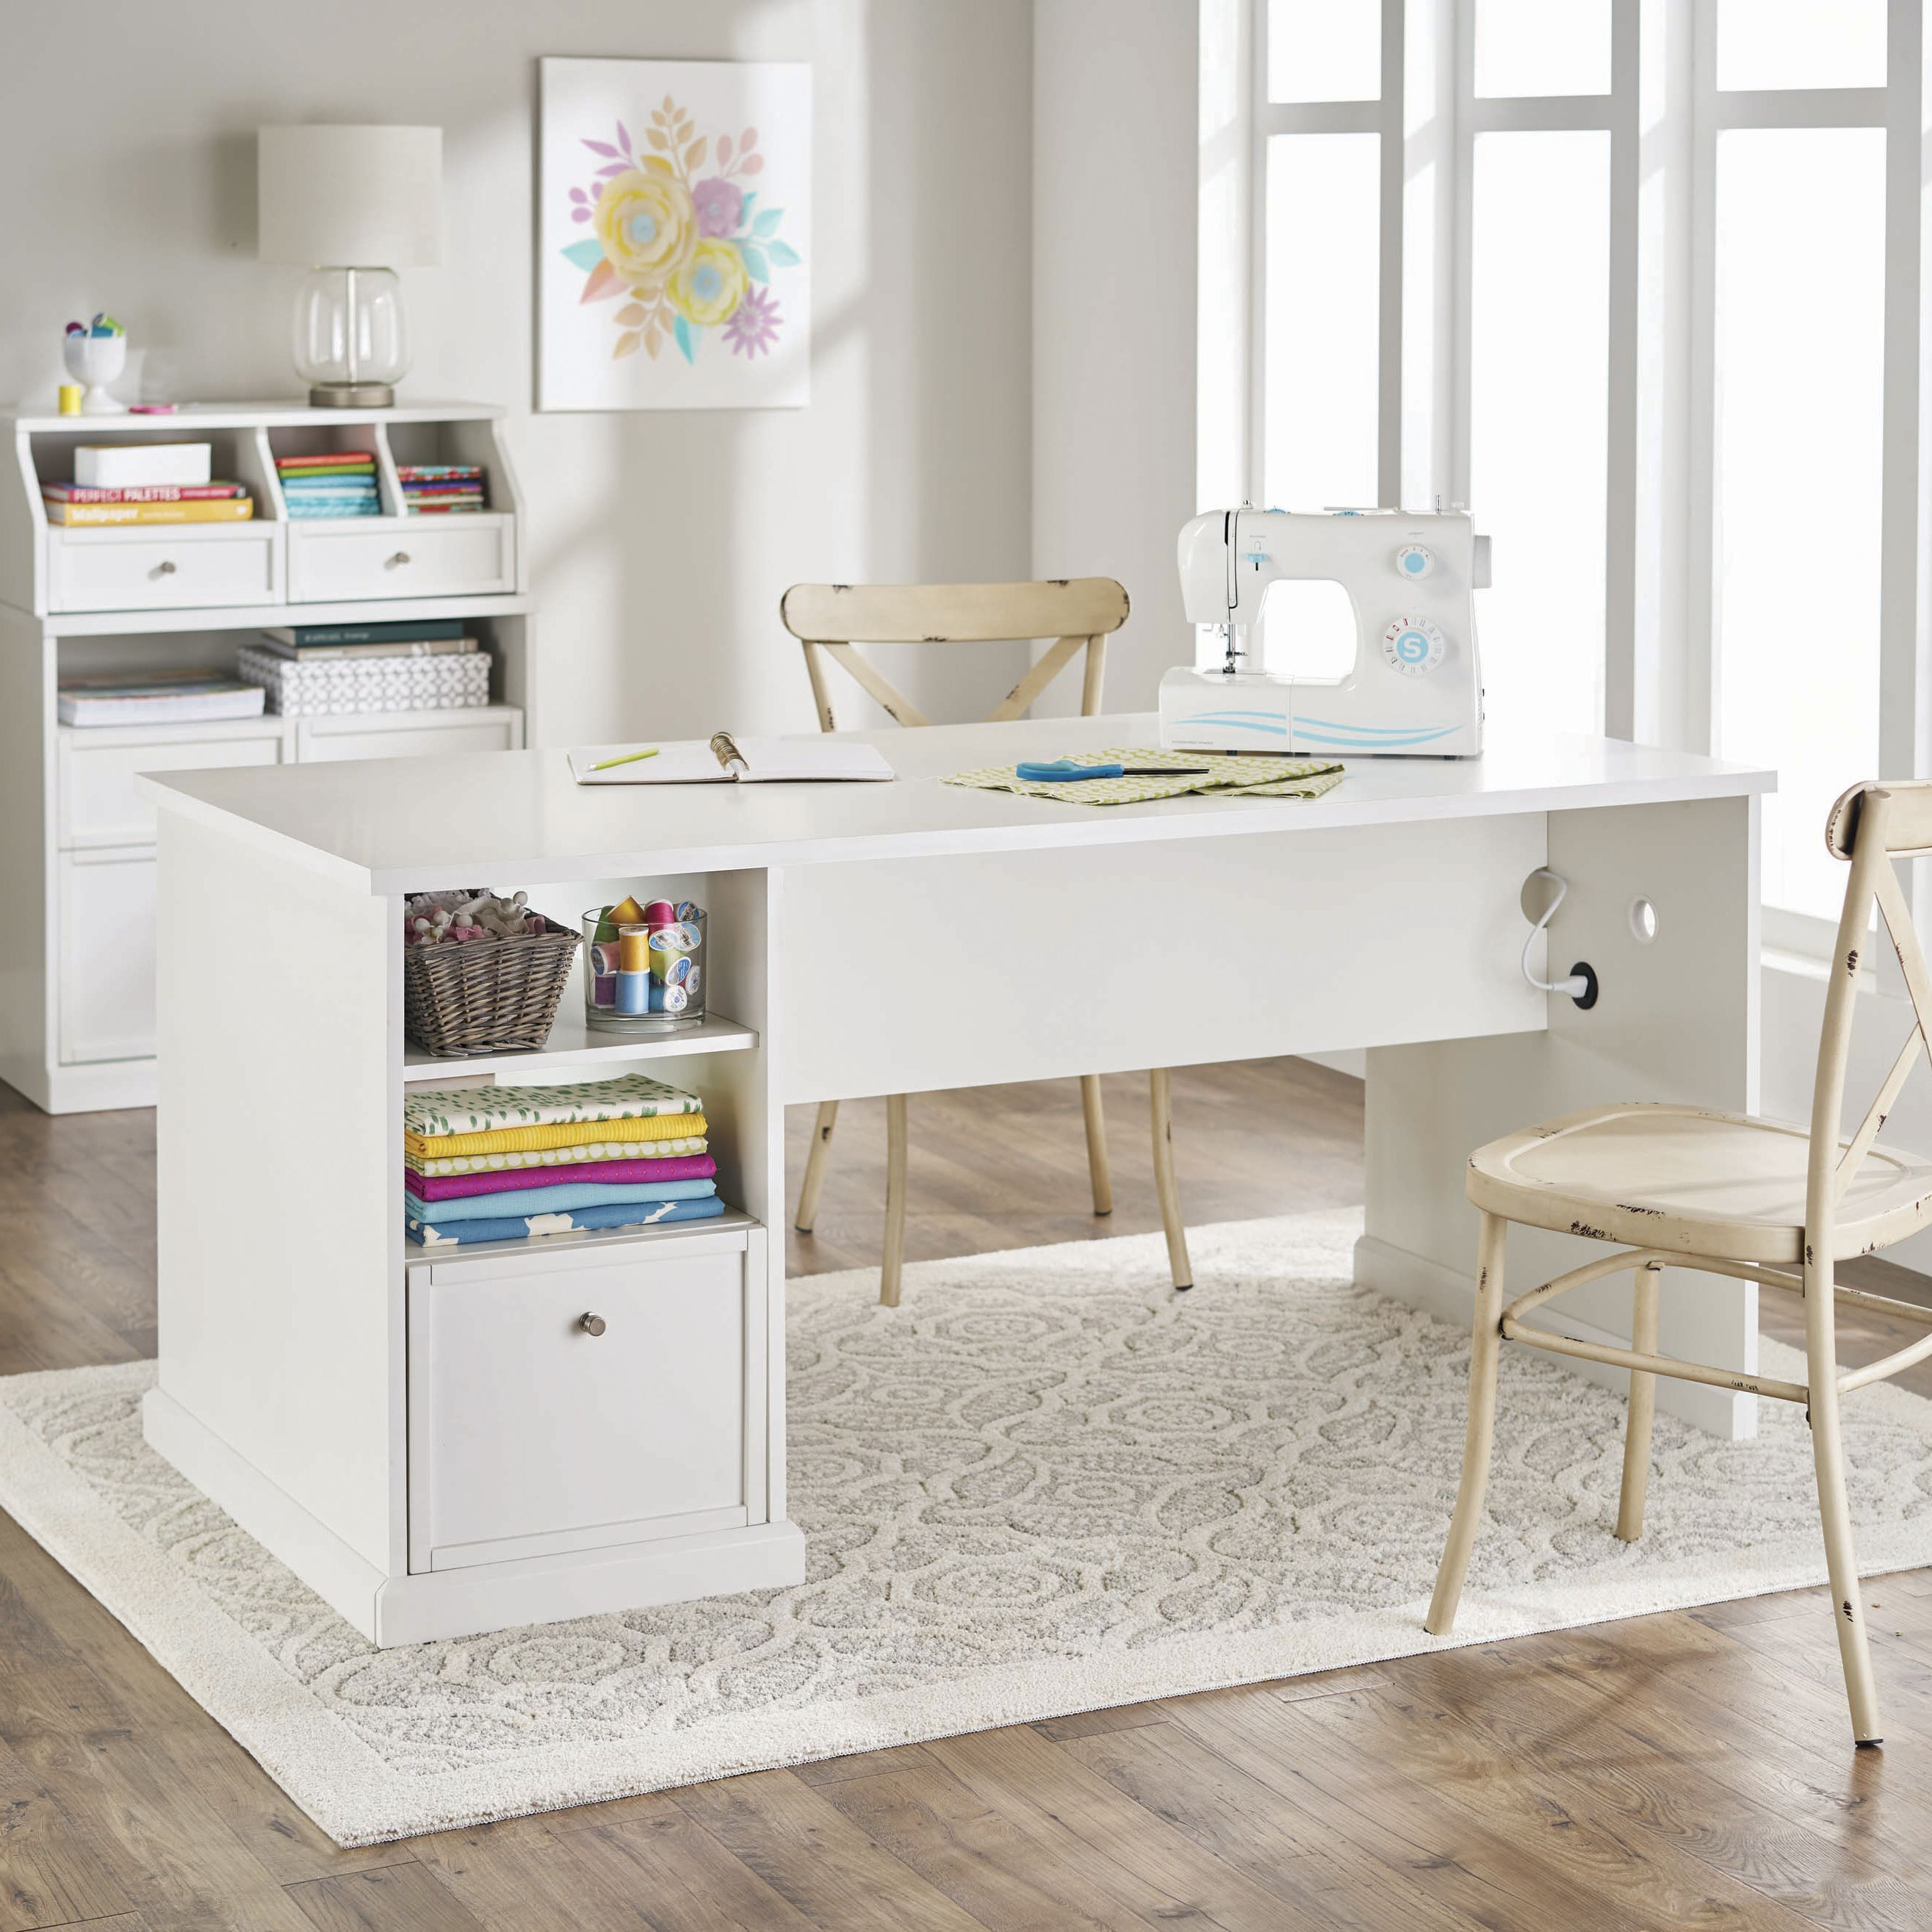 Better Homes Gardens Craftform Sewing And Craft Table White Finish Walmart Com Craft Tables With Storage Craft Table Better Homes